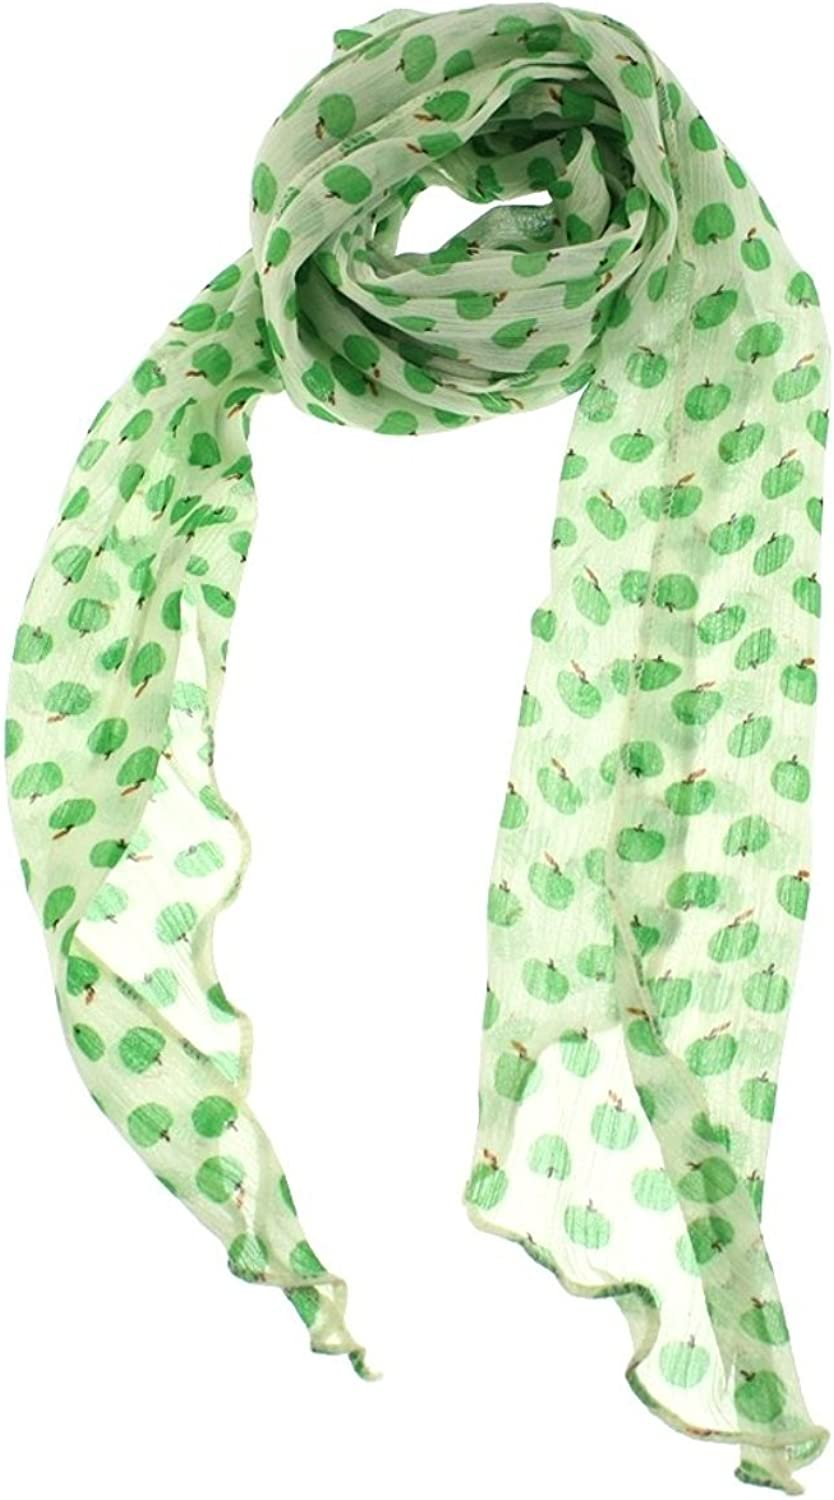 Zac's Alter Ego 3 in 1 Patterned Sash Scarf/Head Scarf/Neck Scarf